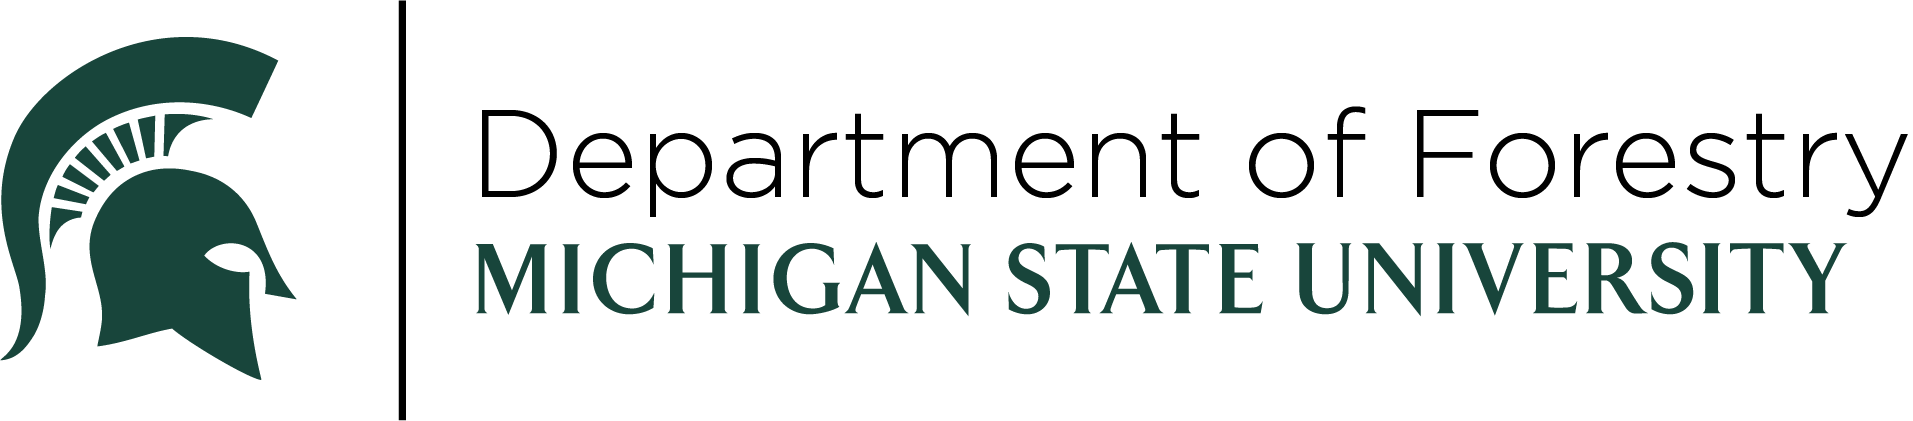 Michigan State University Department of Forestry logo